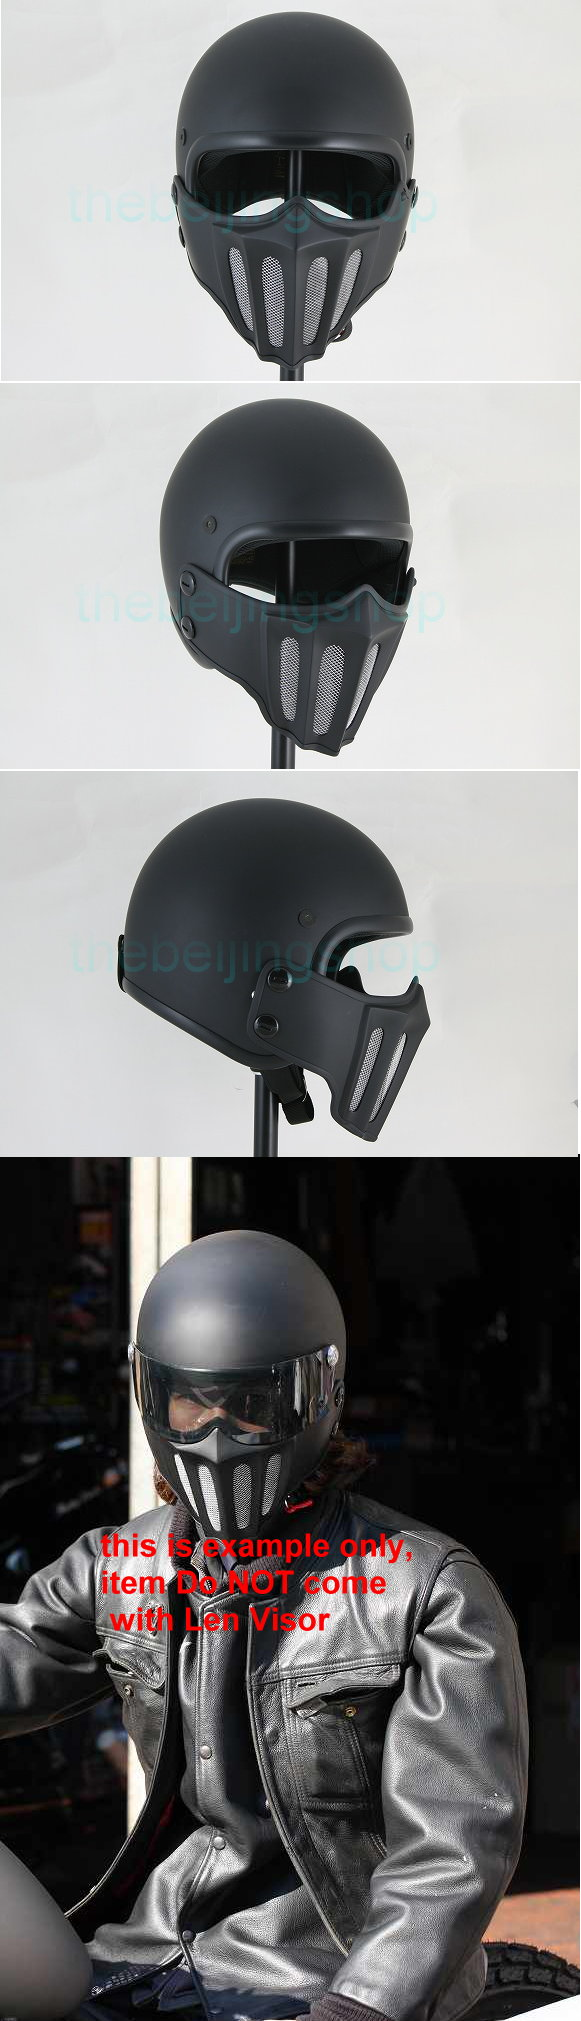 Tt Samurai Mask With Jet Open Face Motorcycle Helmet Pined By Http Paydayloansturbo Com Fast P Motorcycle Helmets Open Face Motorcycle Helmets Biker Helmets